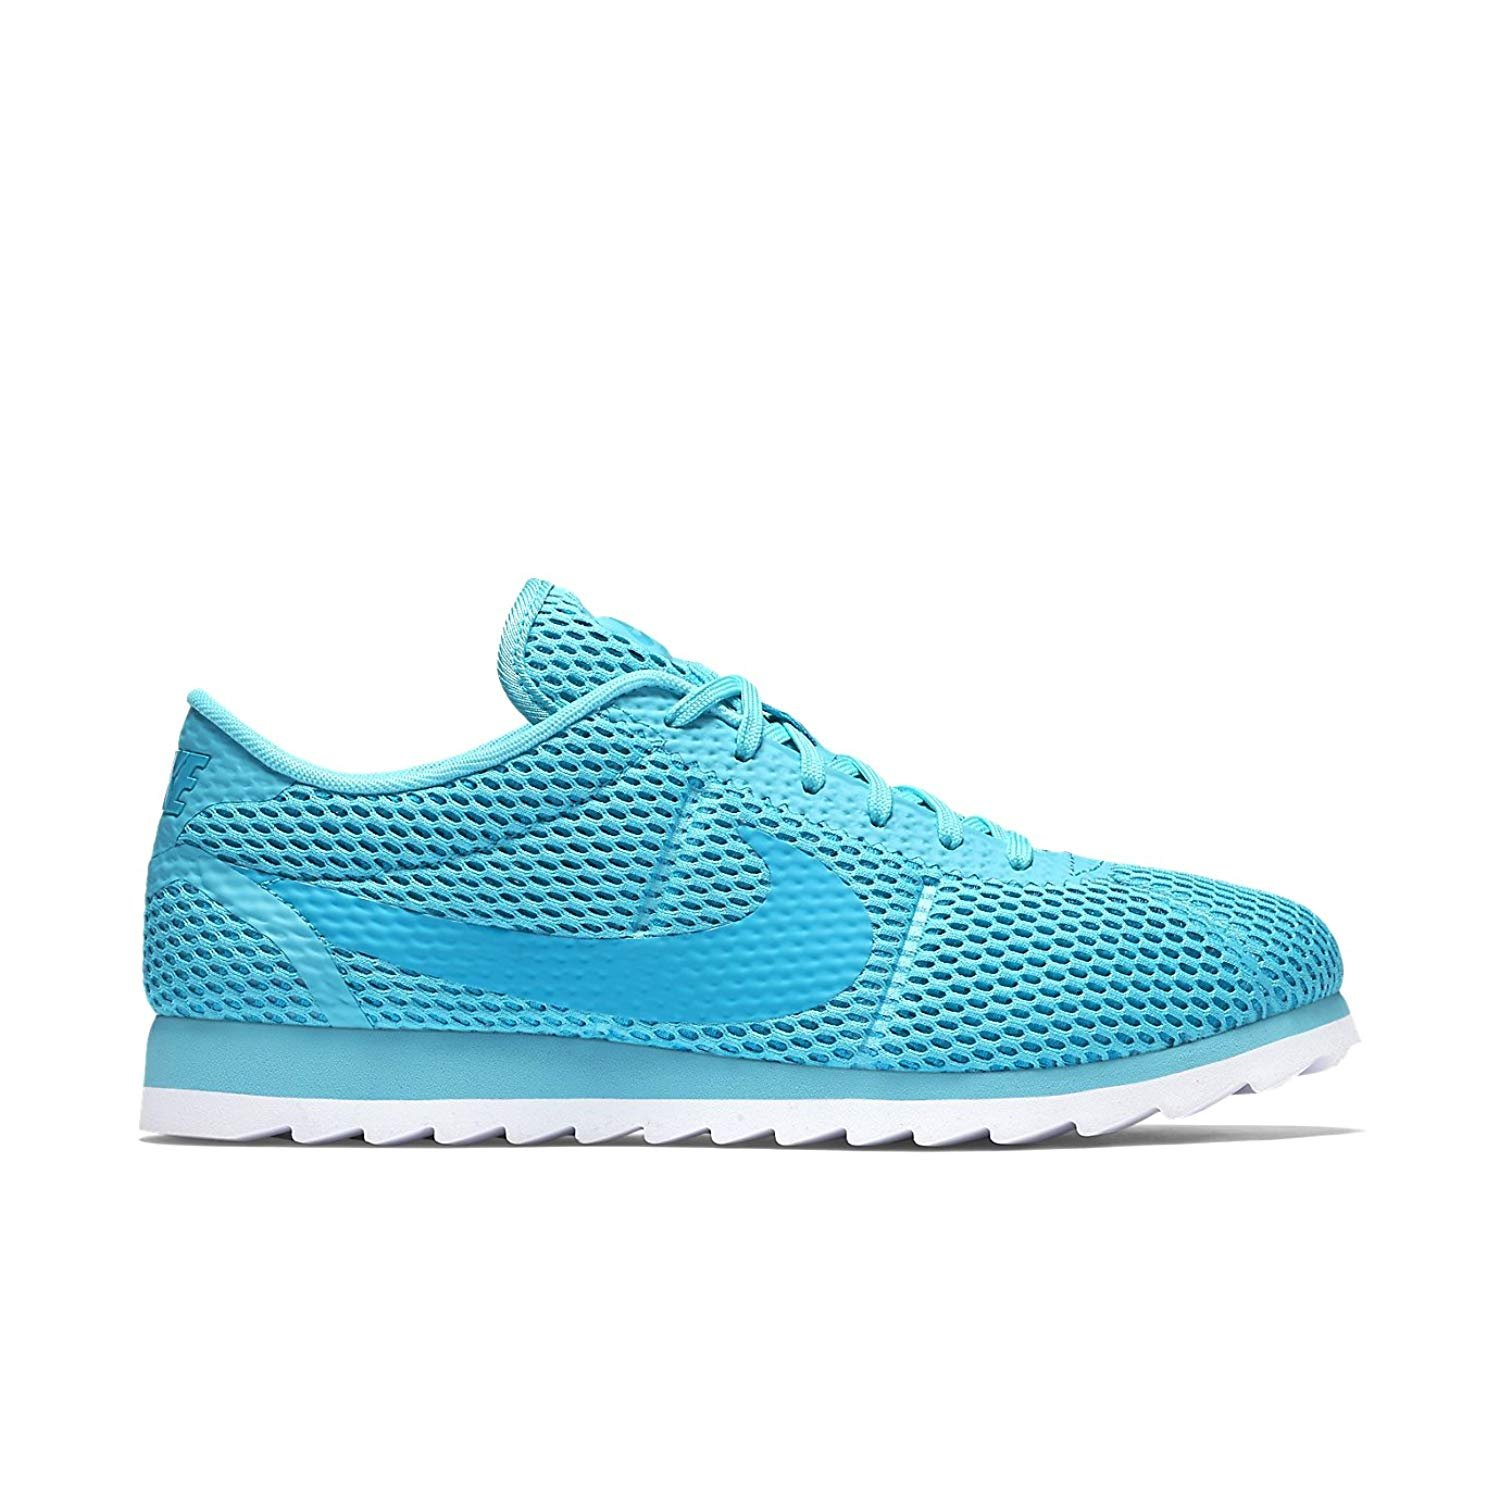 best loved a5686 ab384 Details about NIKE Women's Cortez Ultra BR Training Lightweight Running Shoe